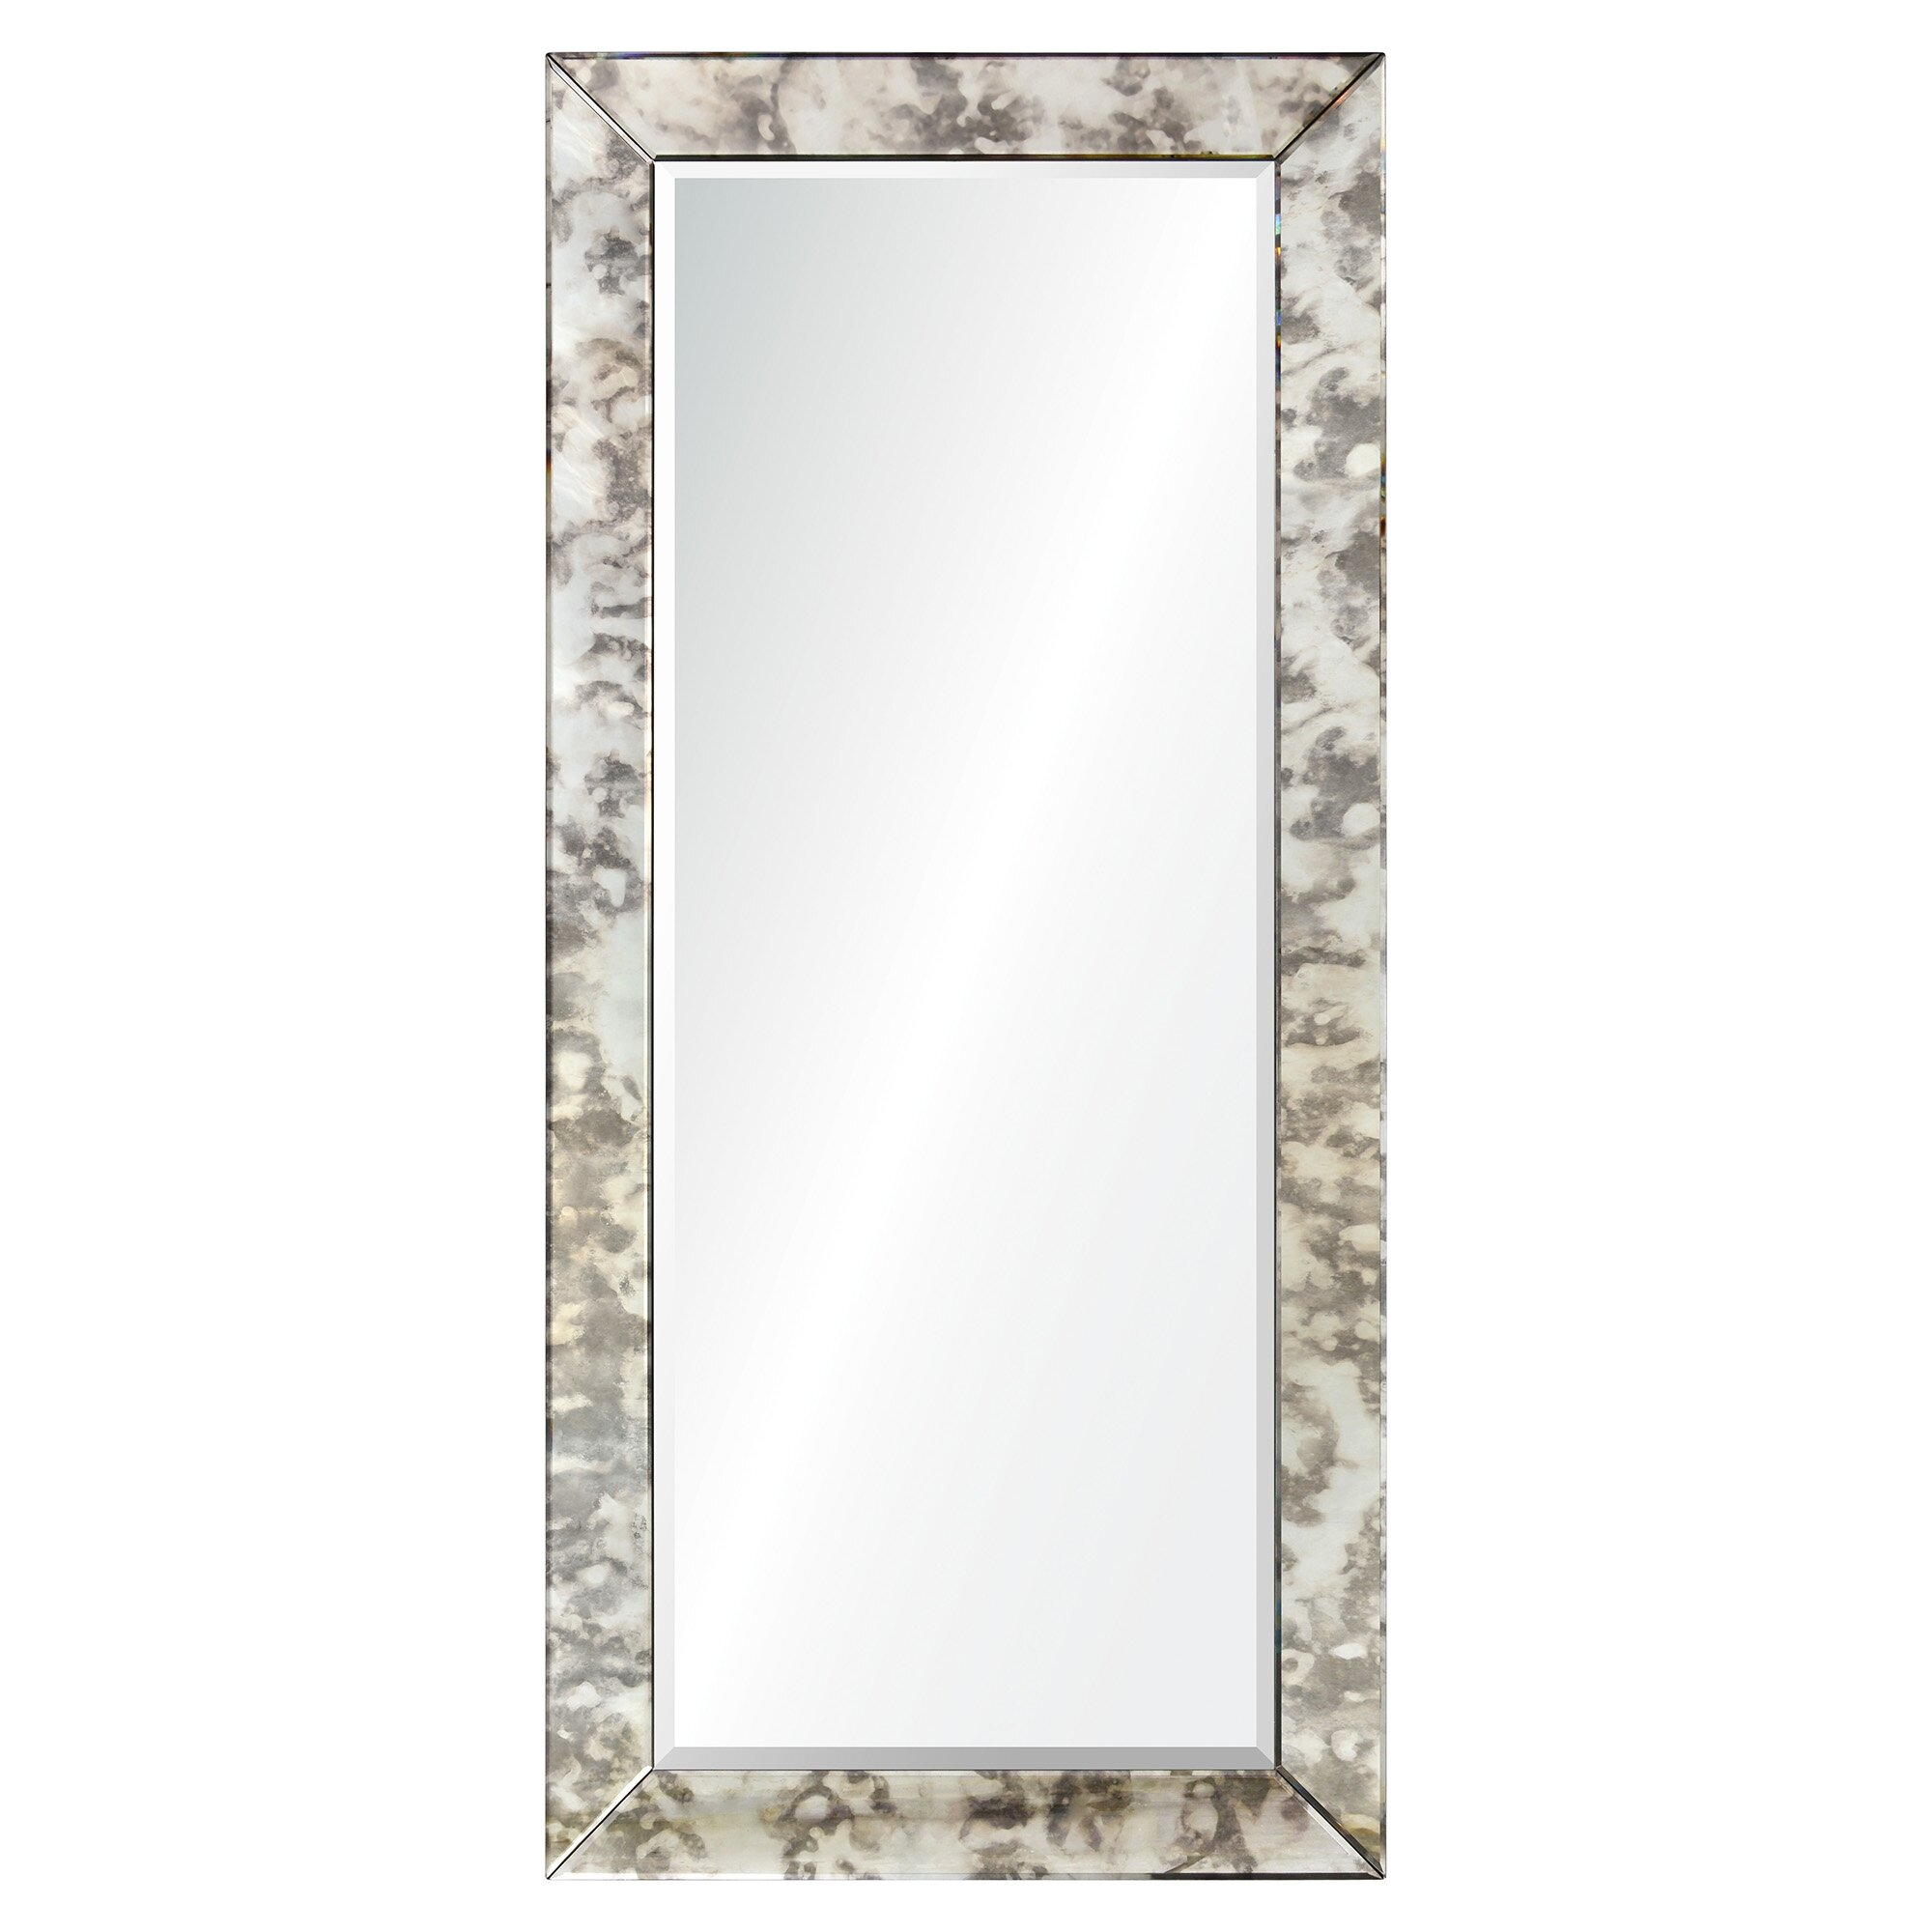 Titania Framed Rectangular Mirror : Wayfair.ca